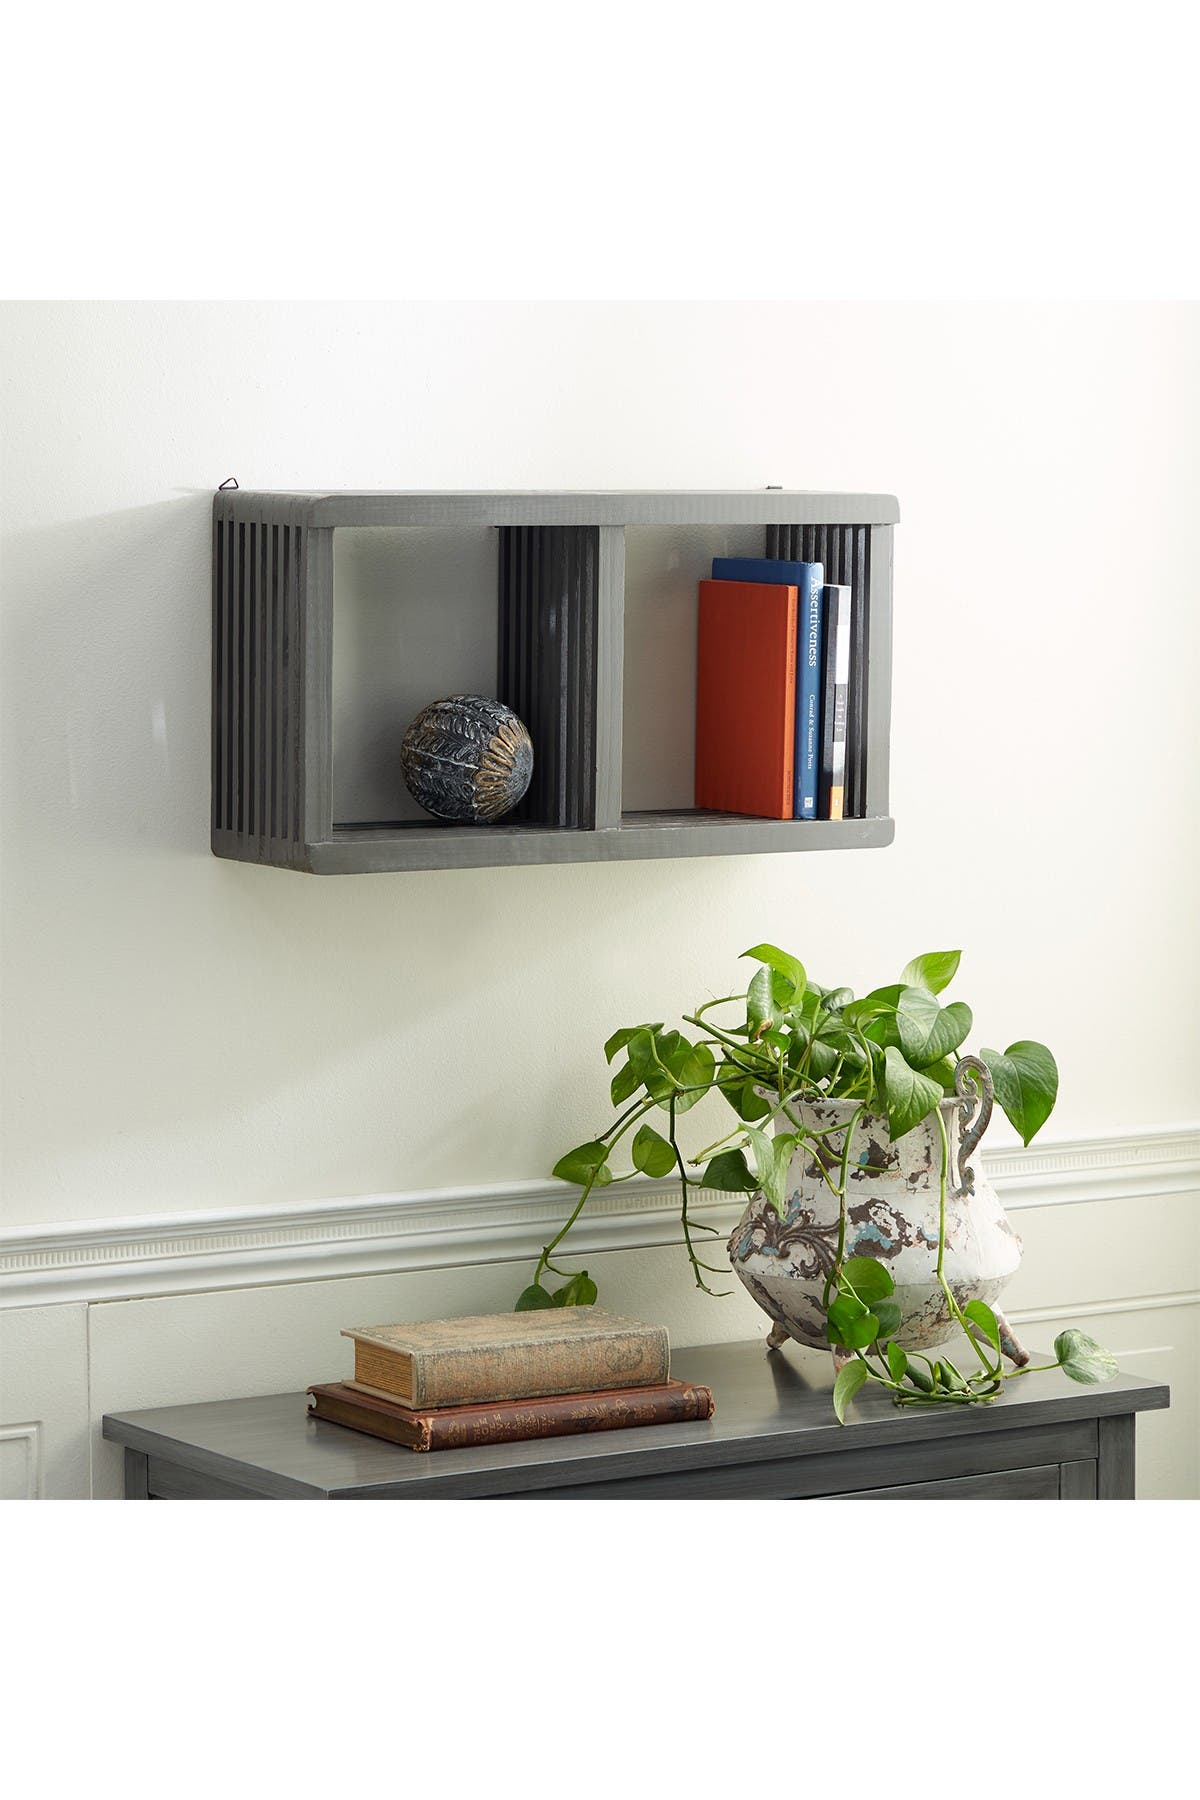 "Image of Willow Row Grey Wood Contemporary Wall Shelf, 12"" x 23"" x 7"""